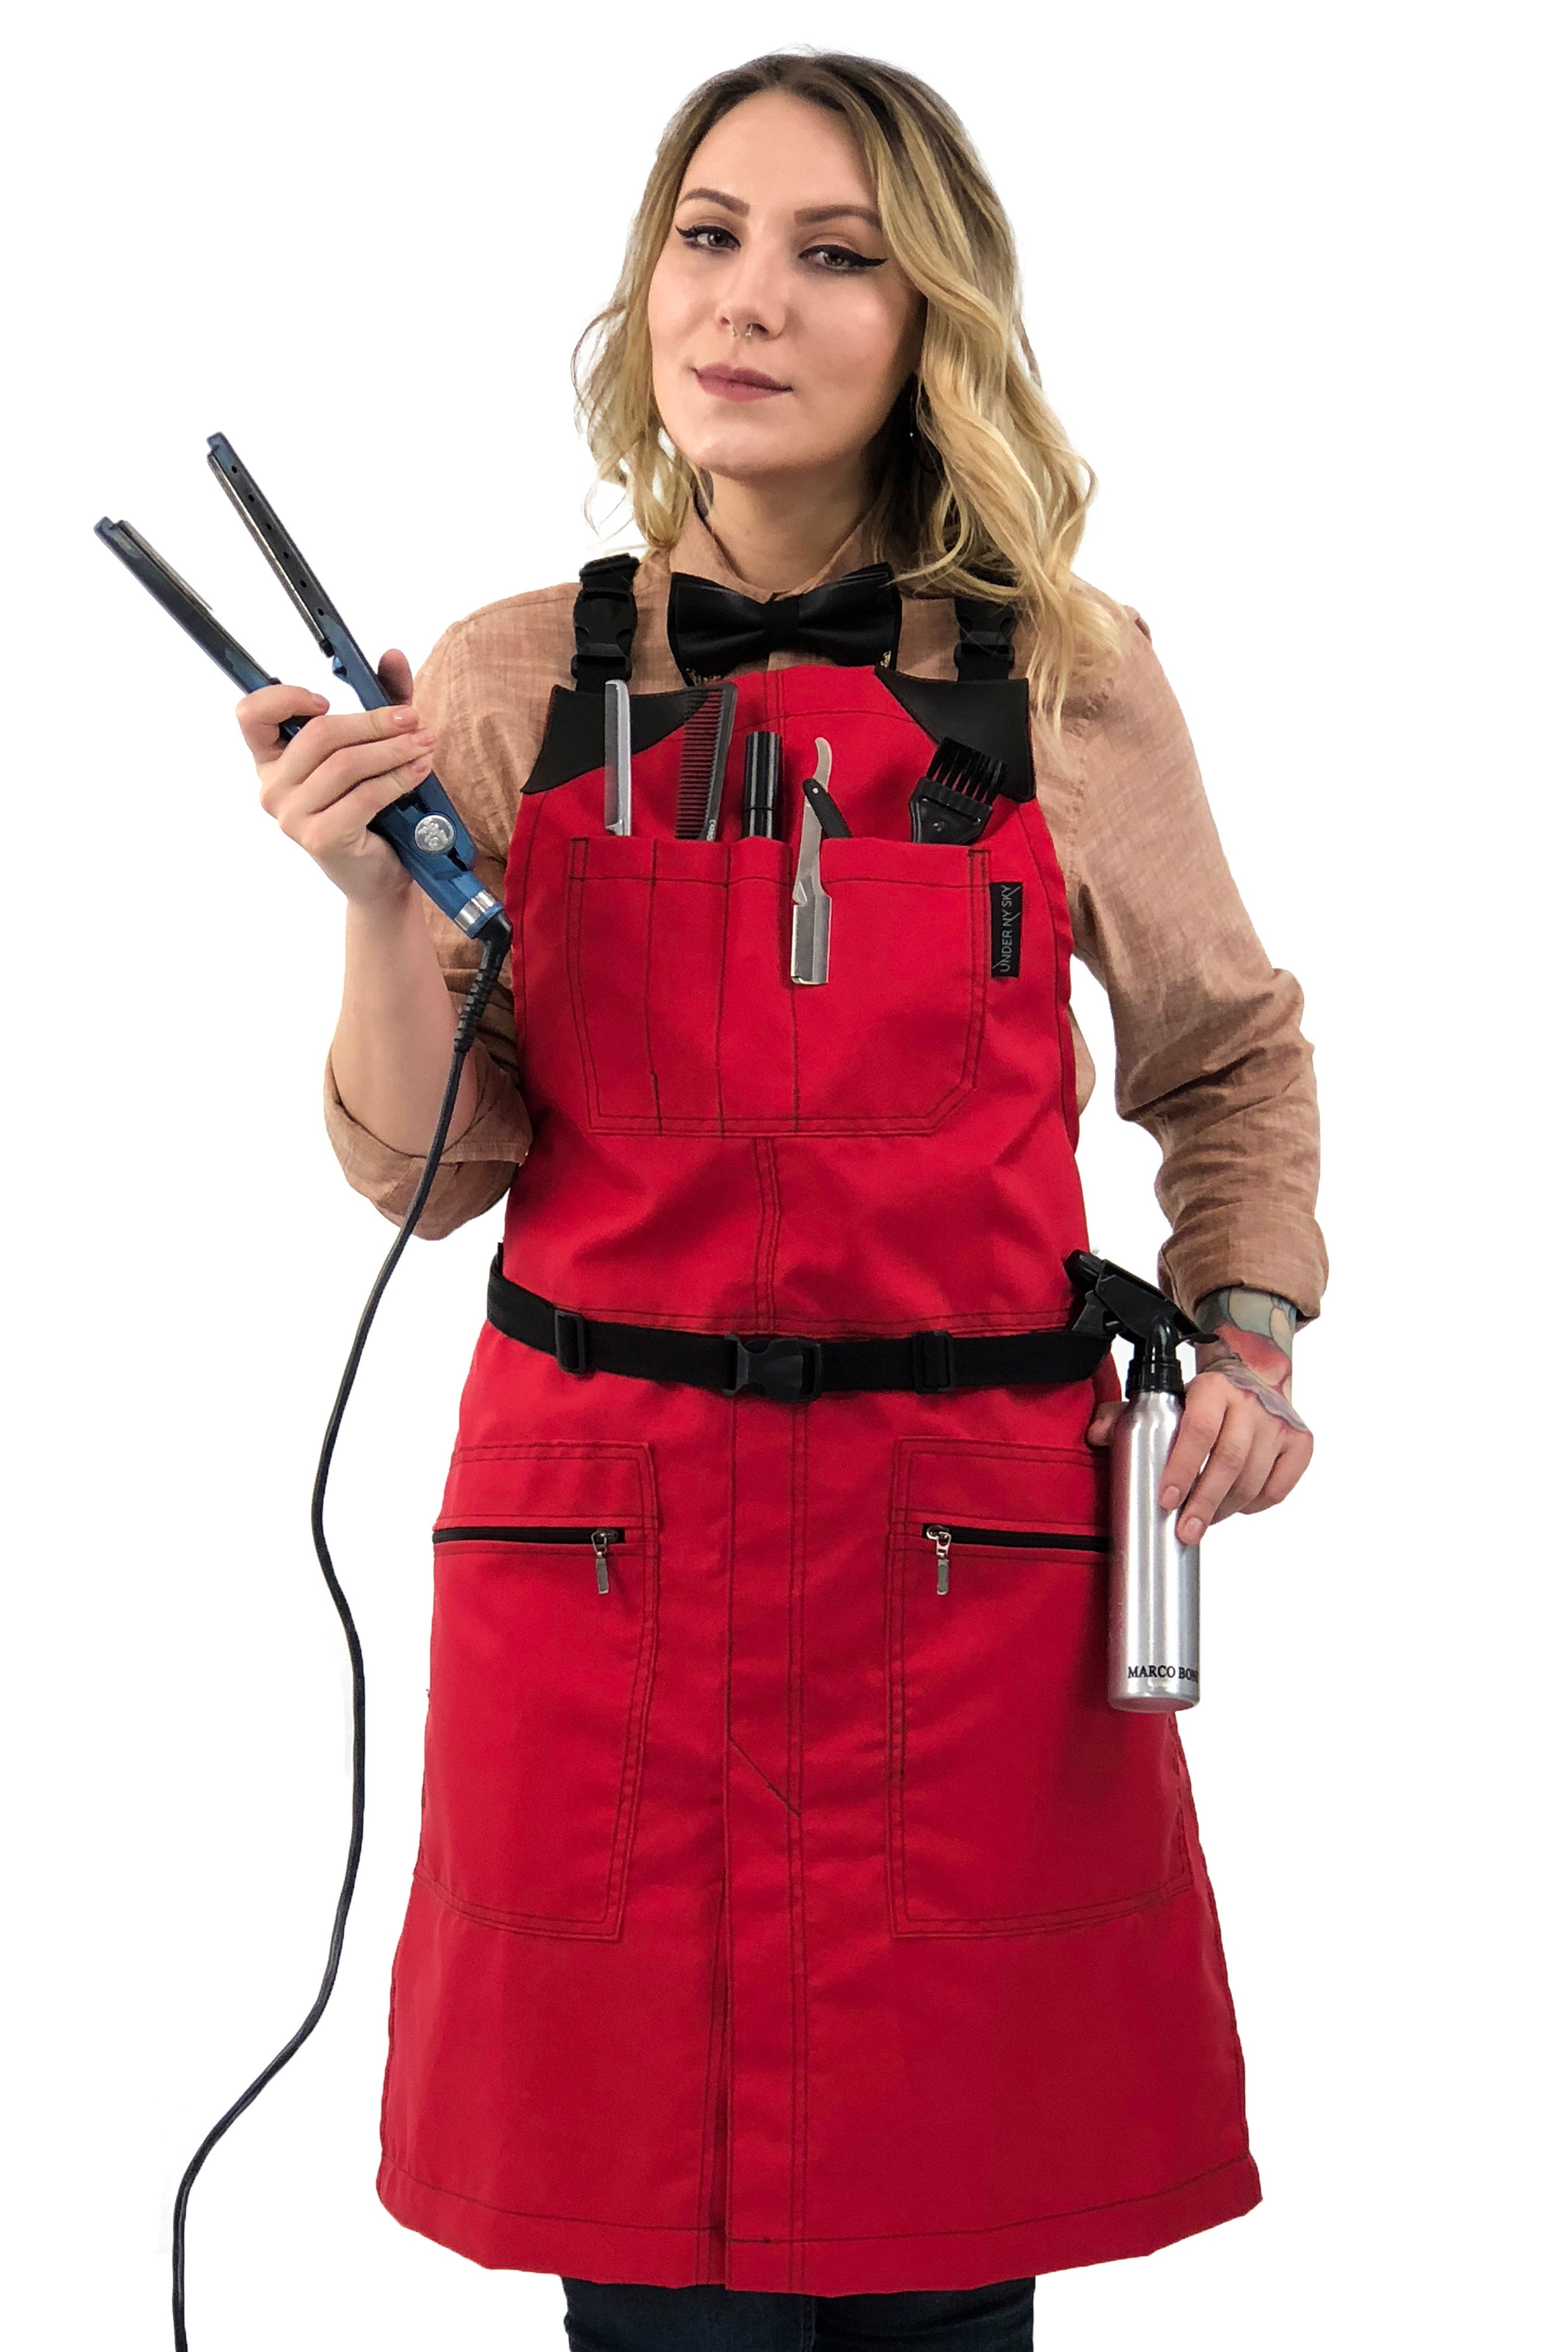 Barber Chemical Waterproof Cross-back Apron - Red Oxford Canvas